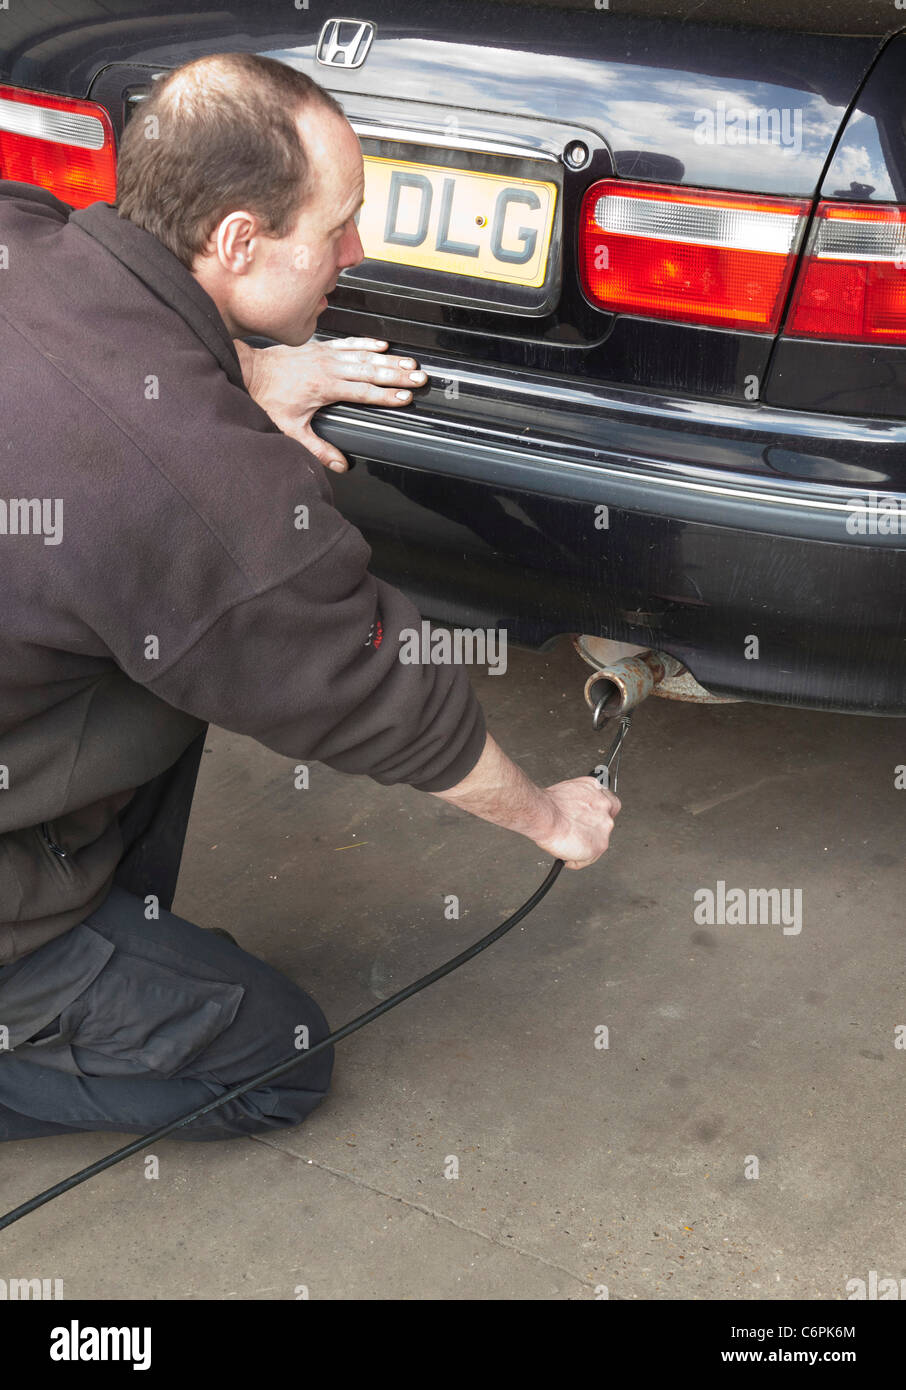 exhaust emissions test during an MOT check for a car in UK - Stock Image